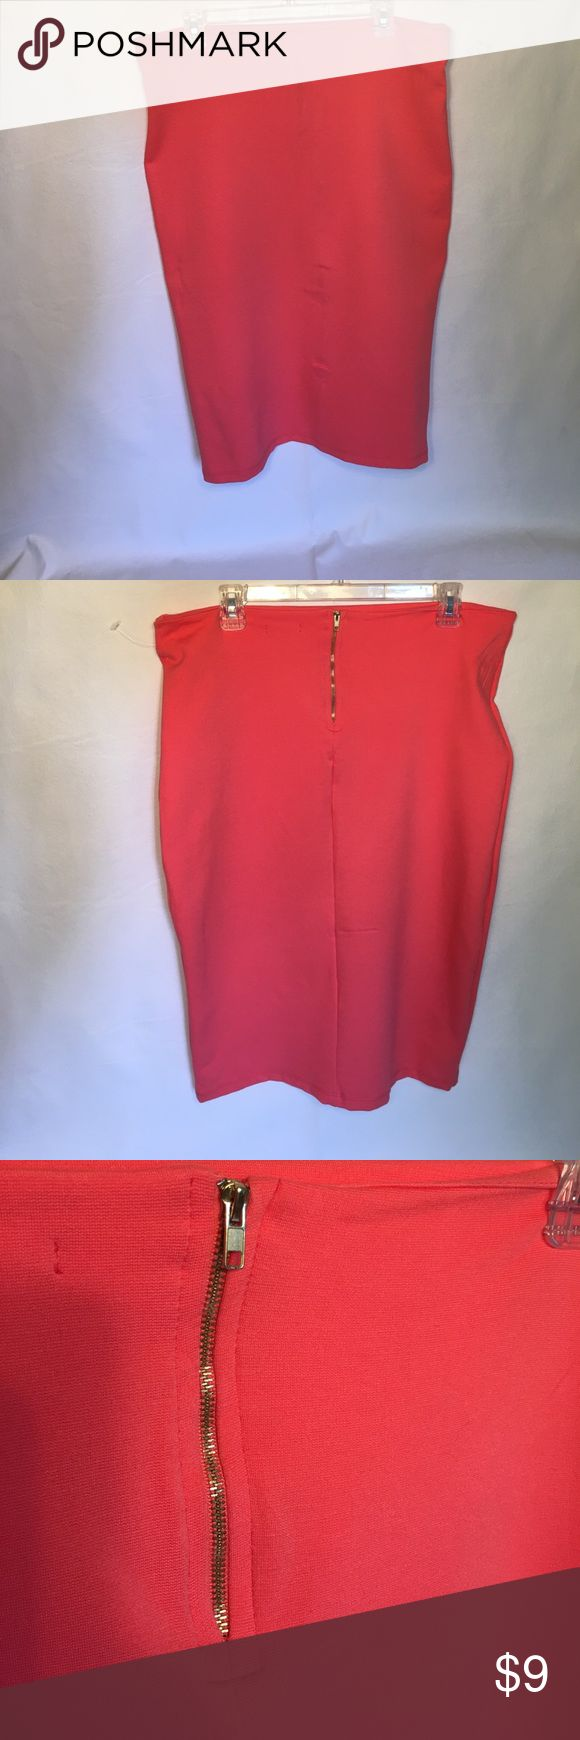 Coral pencil skirt Coral pencil skirt 28in from waist to bottom hem Can easily be dressed up or down. Cute for Spring or Summer! Skirts Pencil